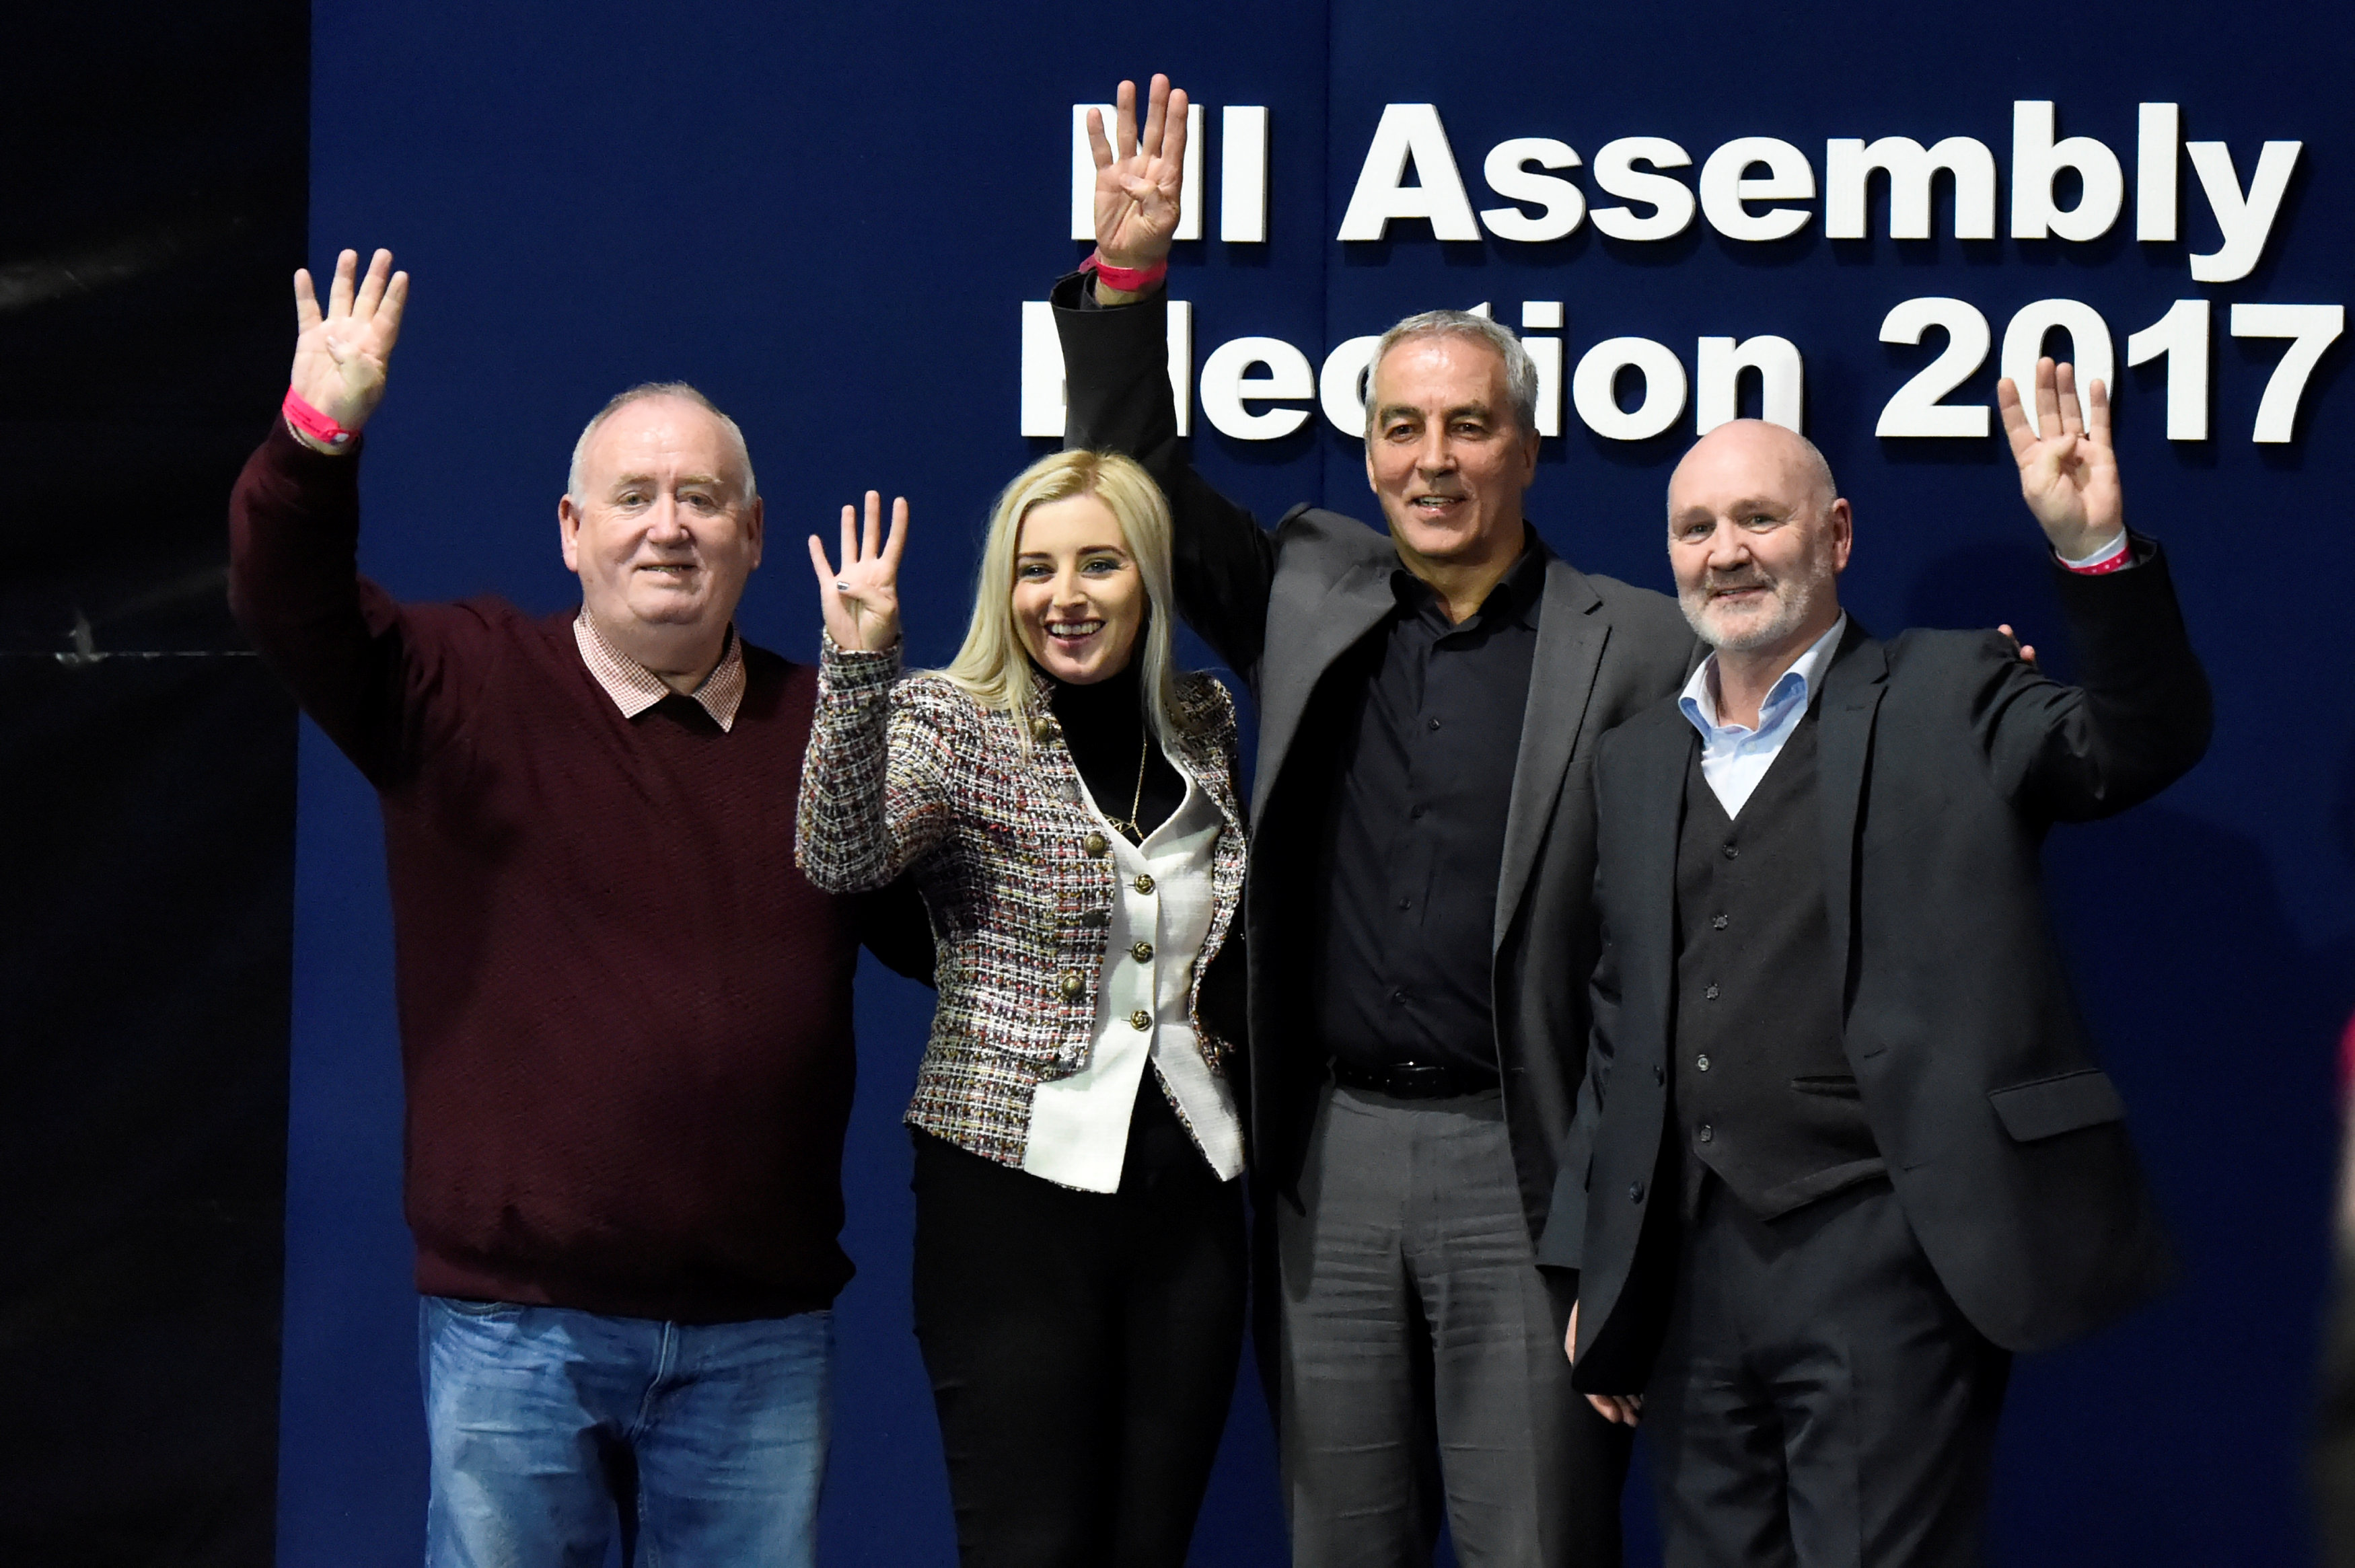 Sinn Fein elected candidates for East Belfast (L to R) Fran McCann, Orlaithi Flynn, Pat Sheehan and Alex Maskey pose on stage at the count centre in Belfast, Northern Ireland March 3, 2017. REUTERS/Clodagh Kilcoyne